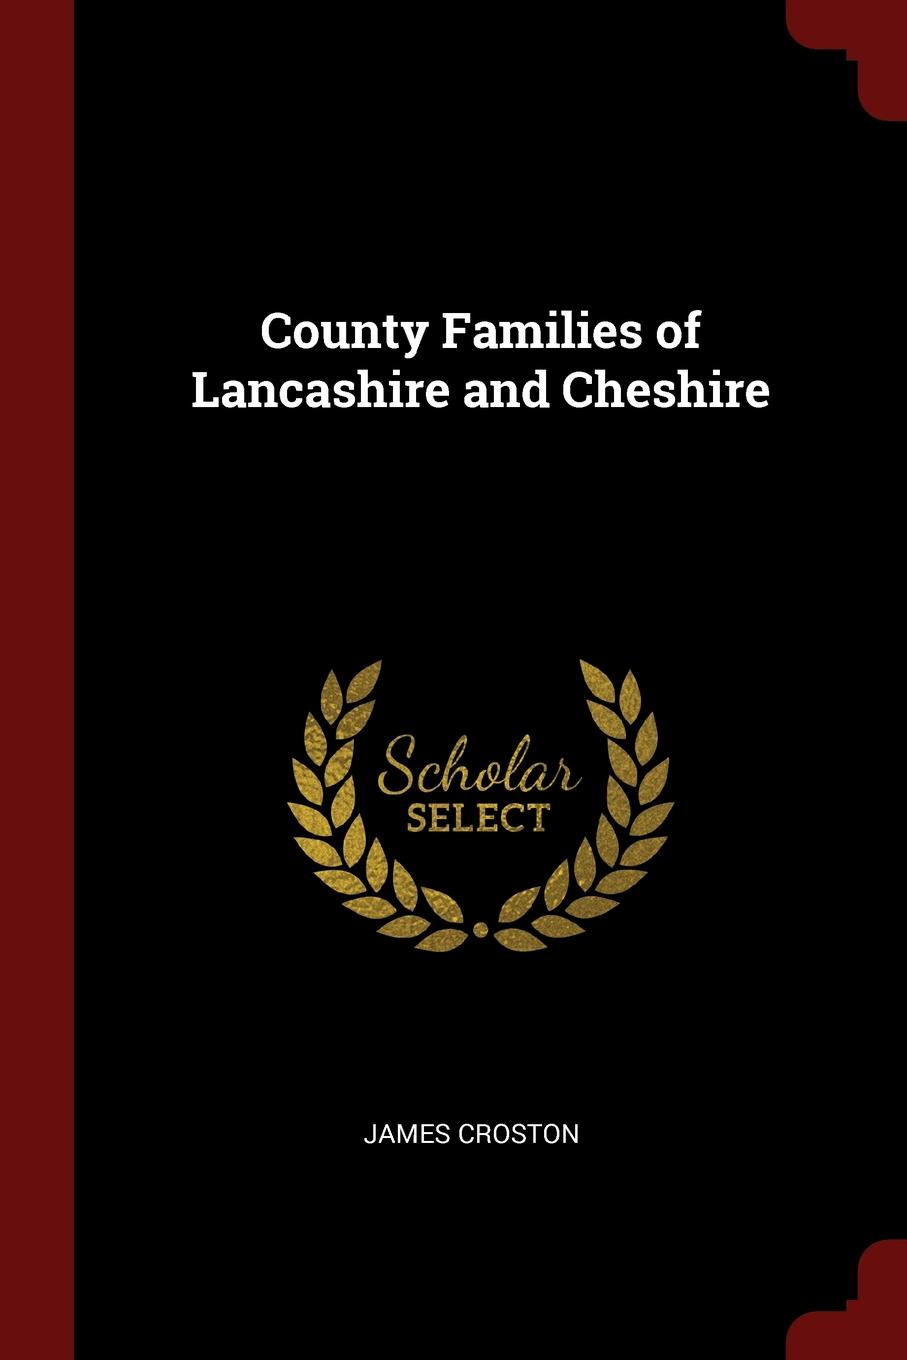 James Croston County Families of Lancashire and Cheshire